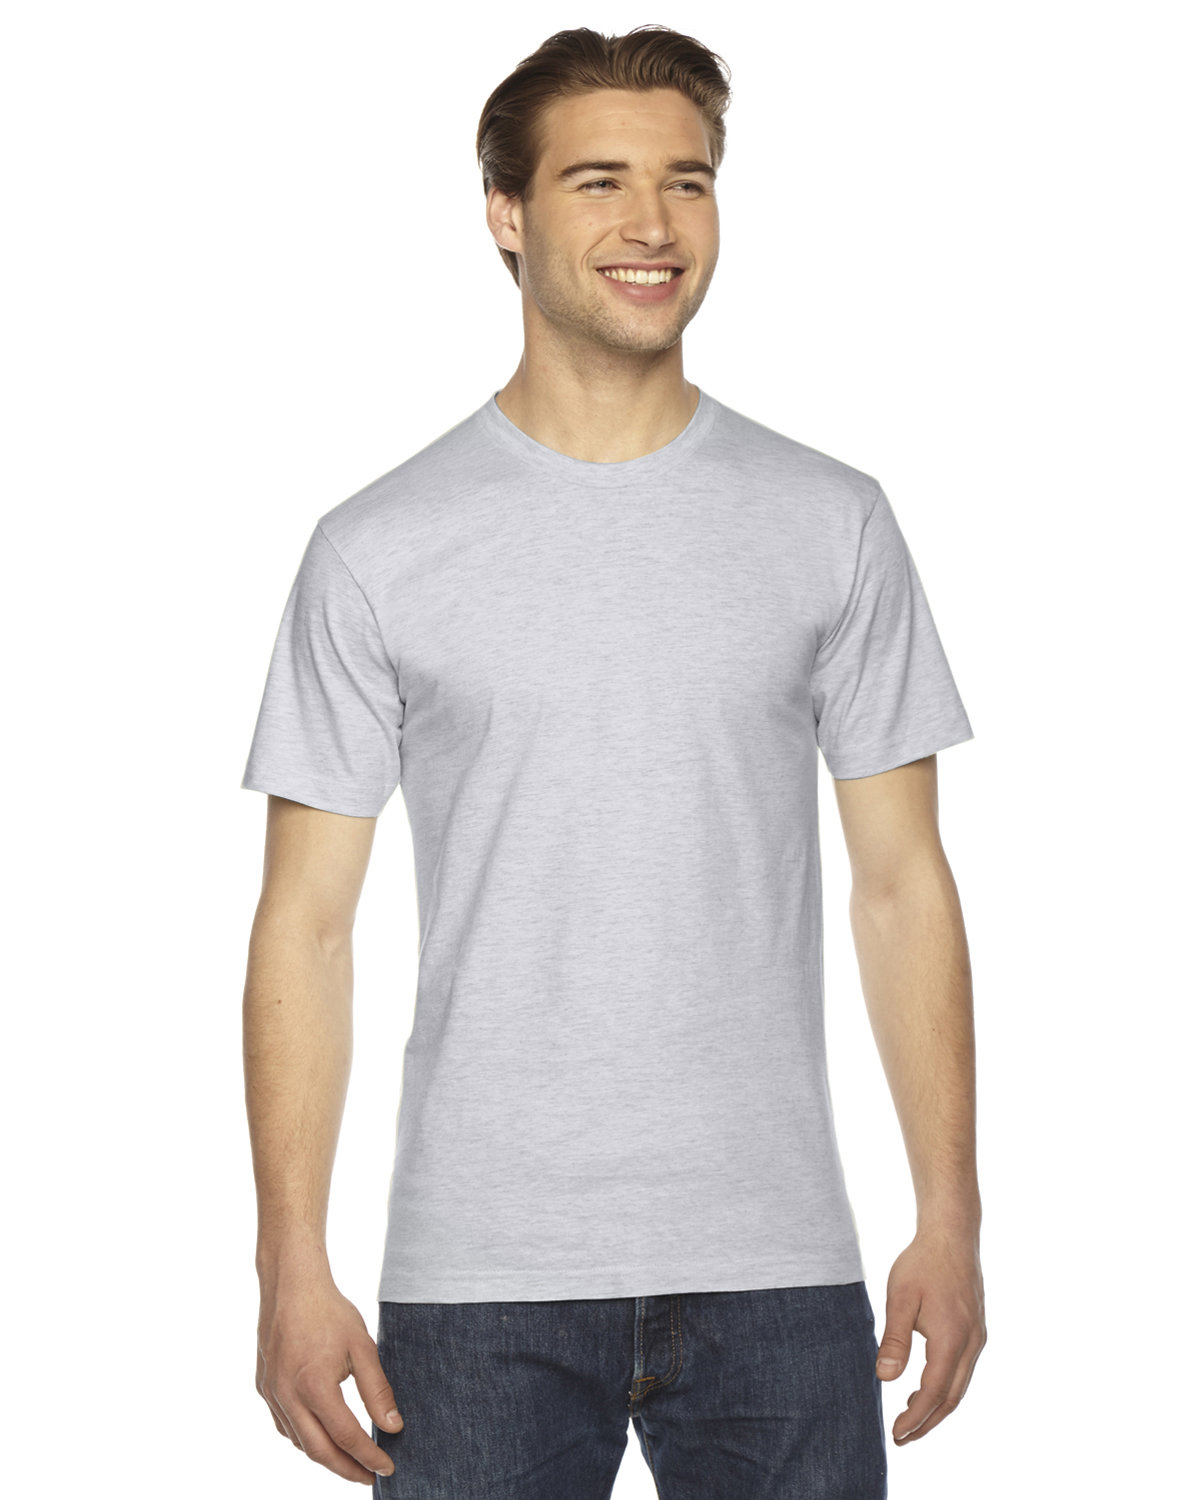 American Apparel Unisex Fine Jersey USA Made T-Shirt ASH GREY